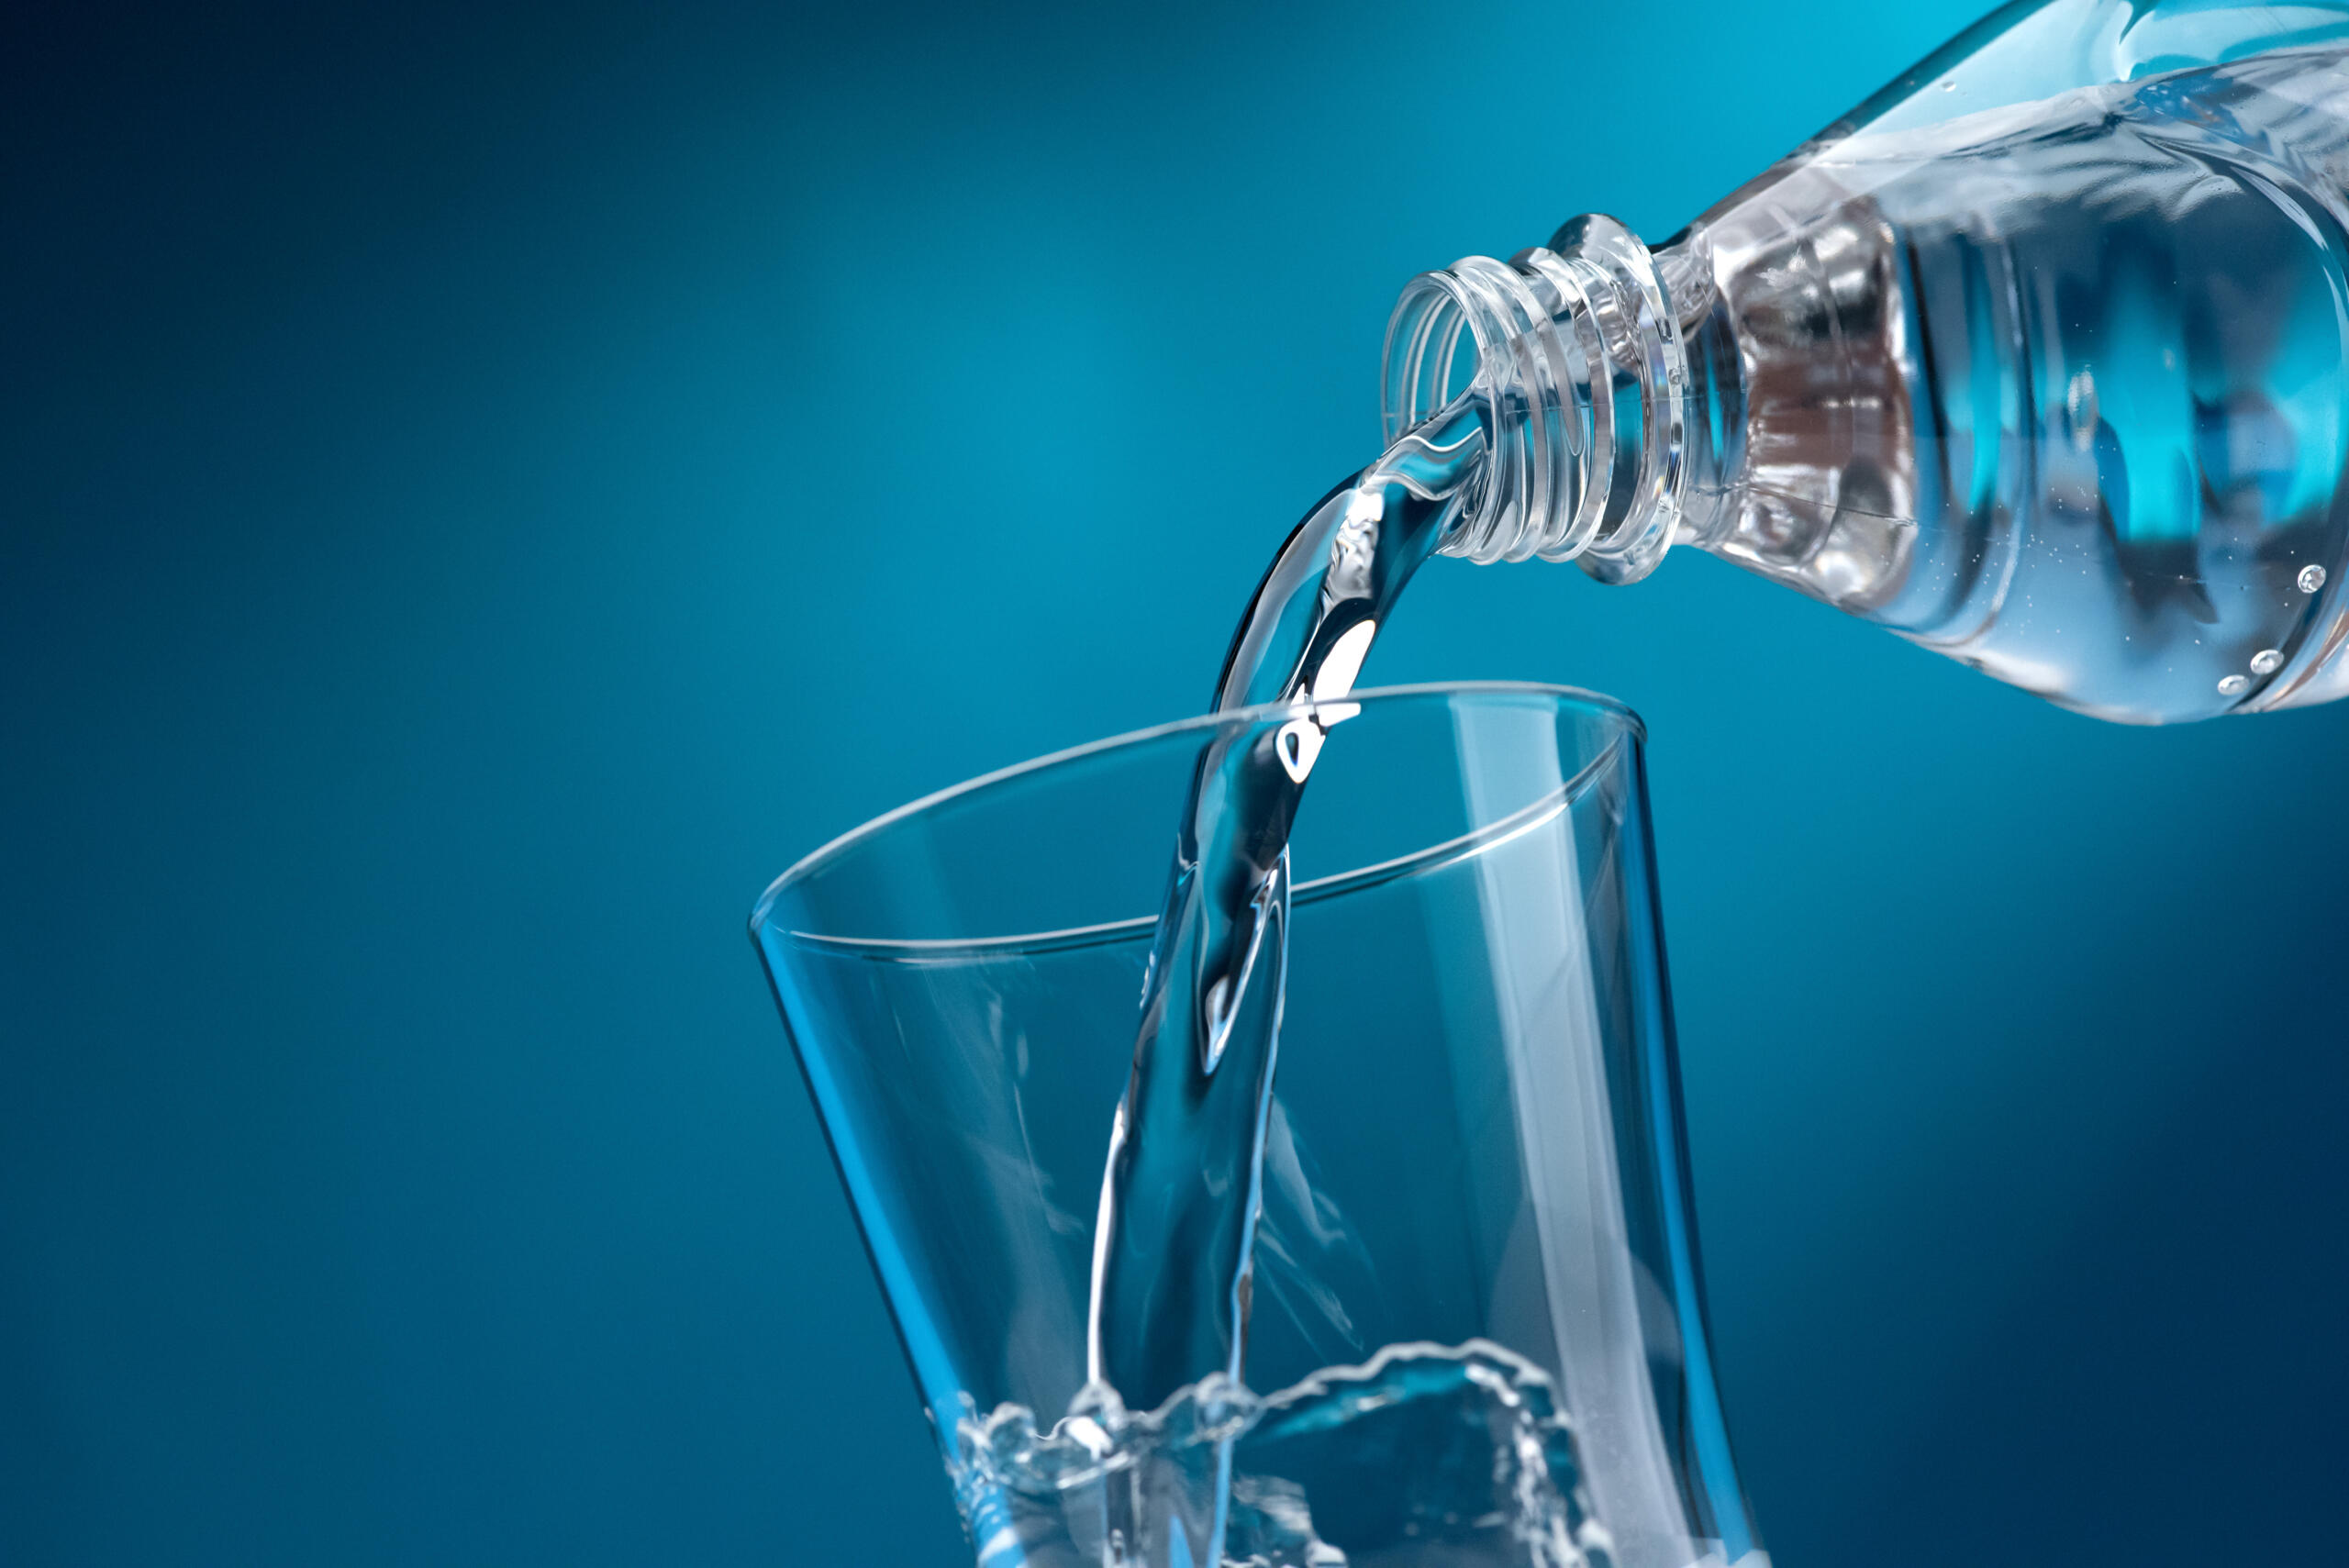 Mineral water may provide minerals to human body but the minerals from broccoli is much higher than mineral water